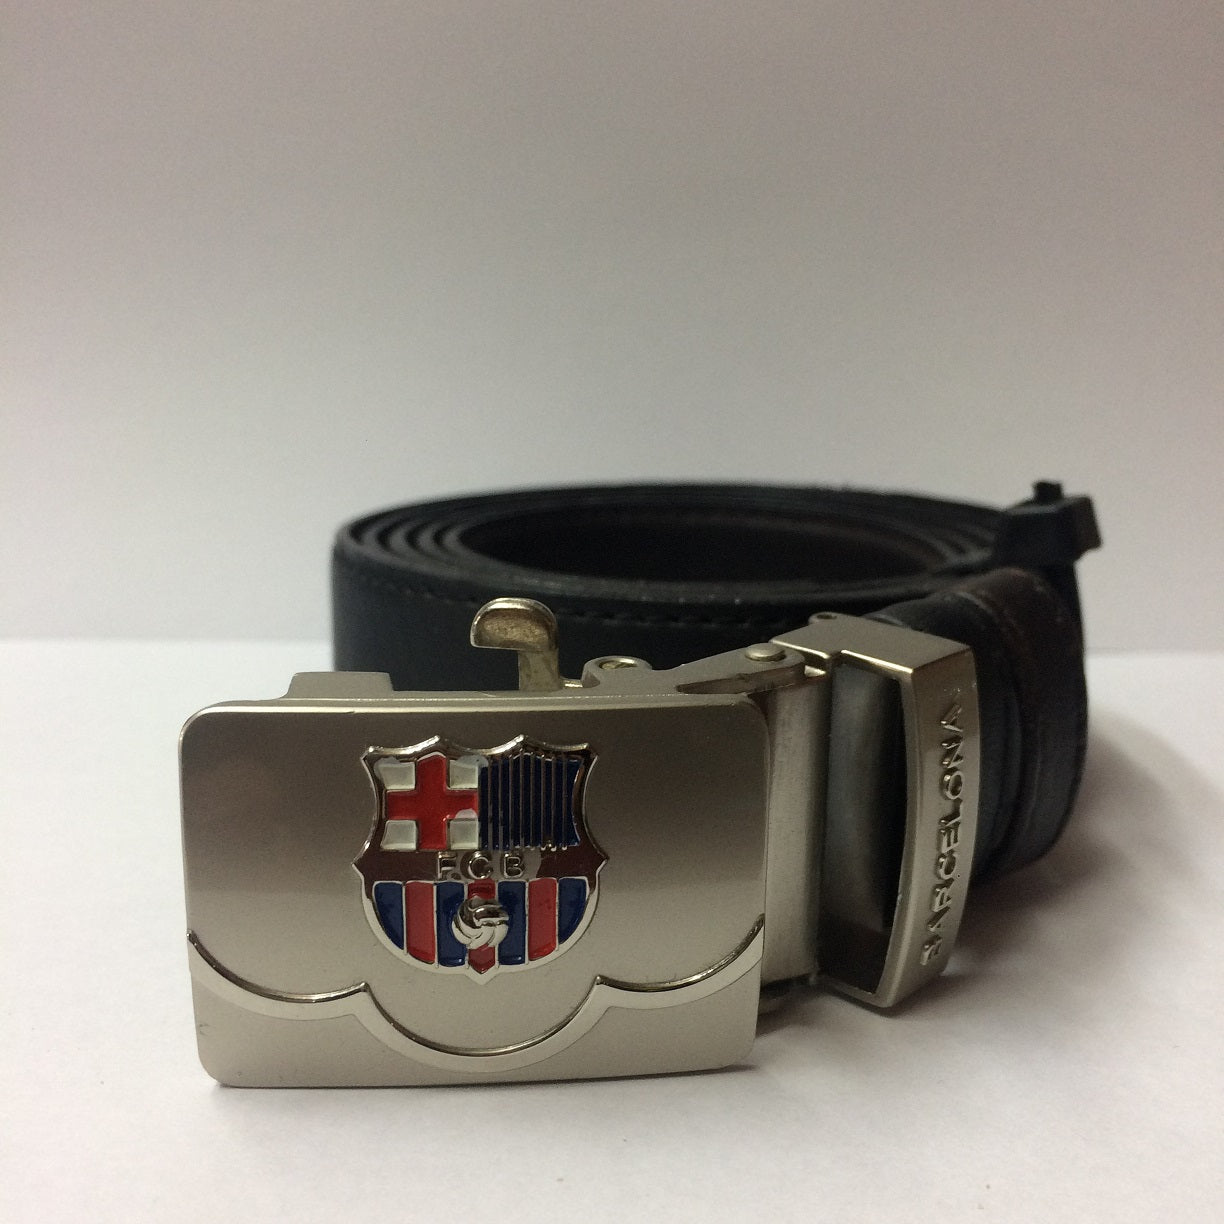 Barcelona Munich Men's Dress Belt